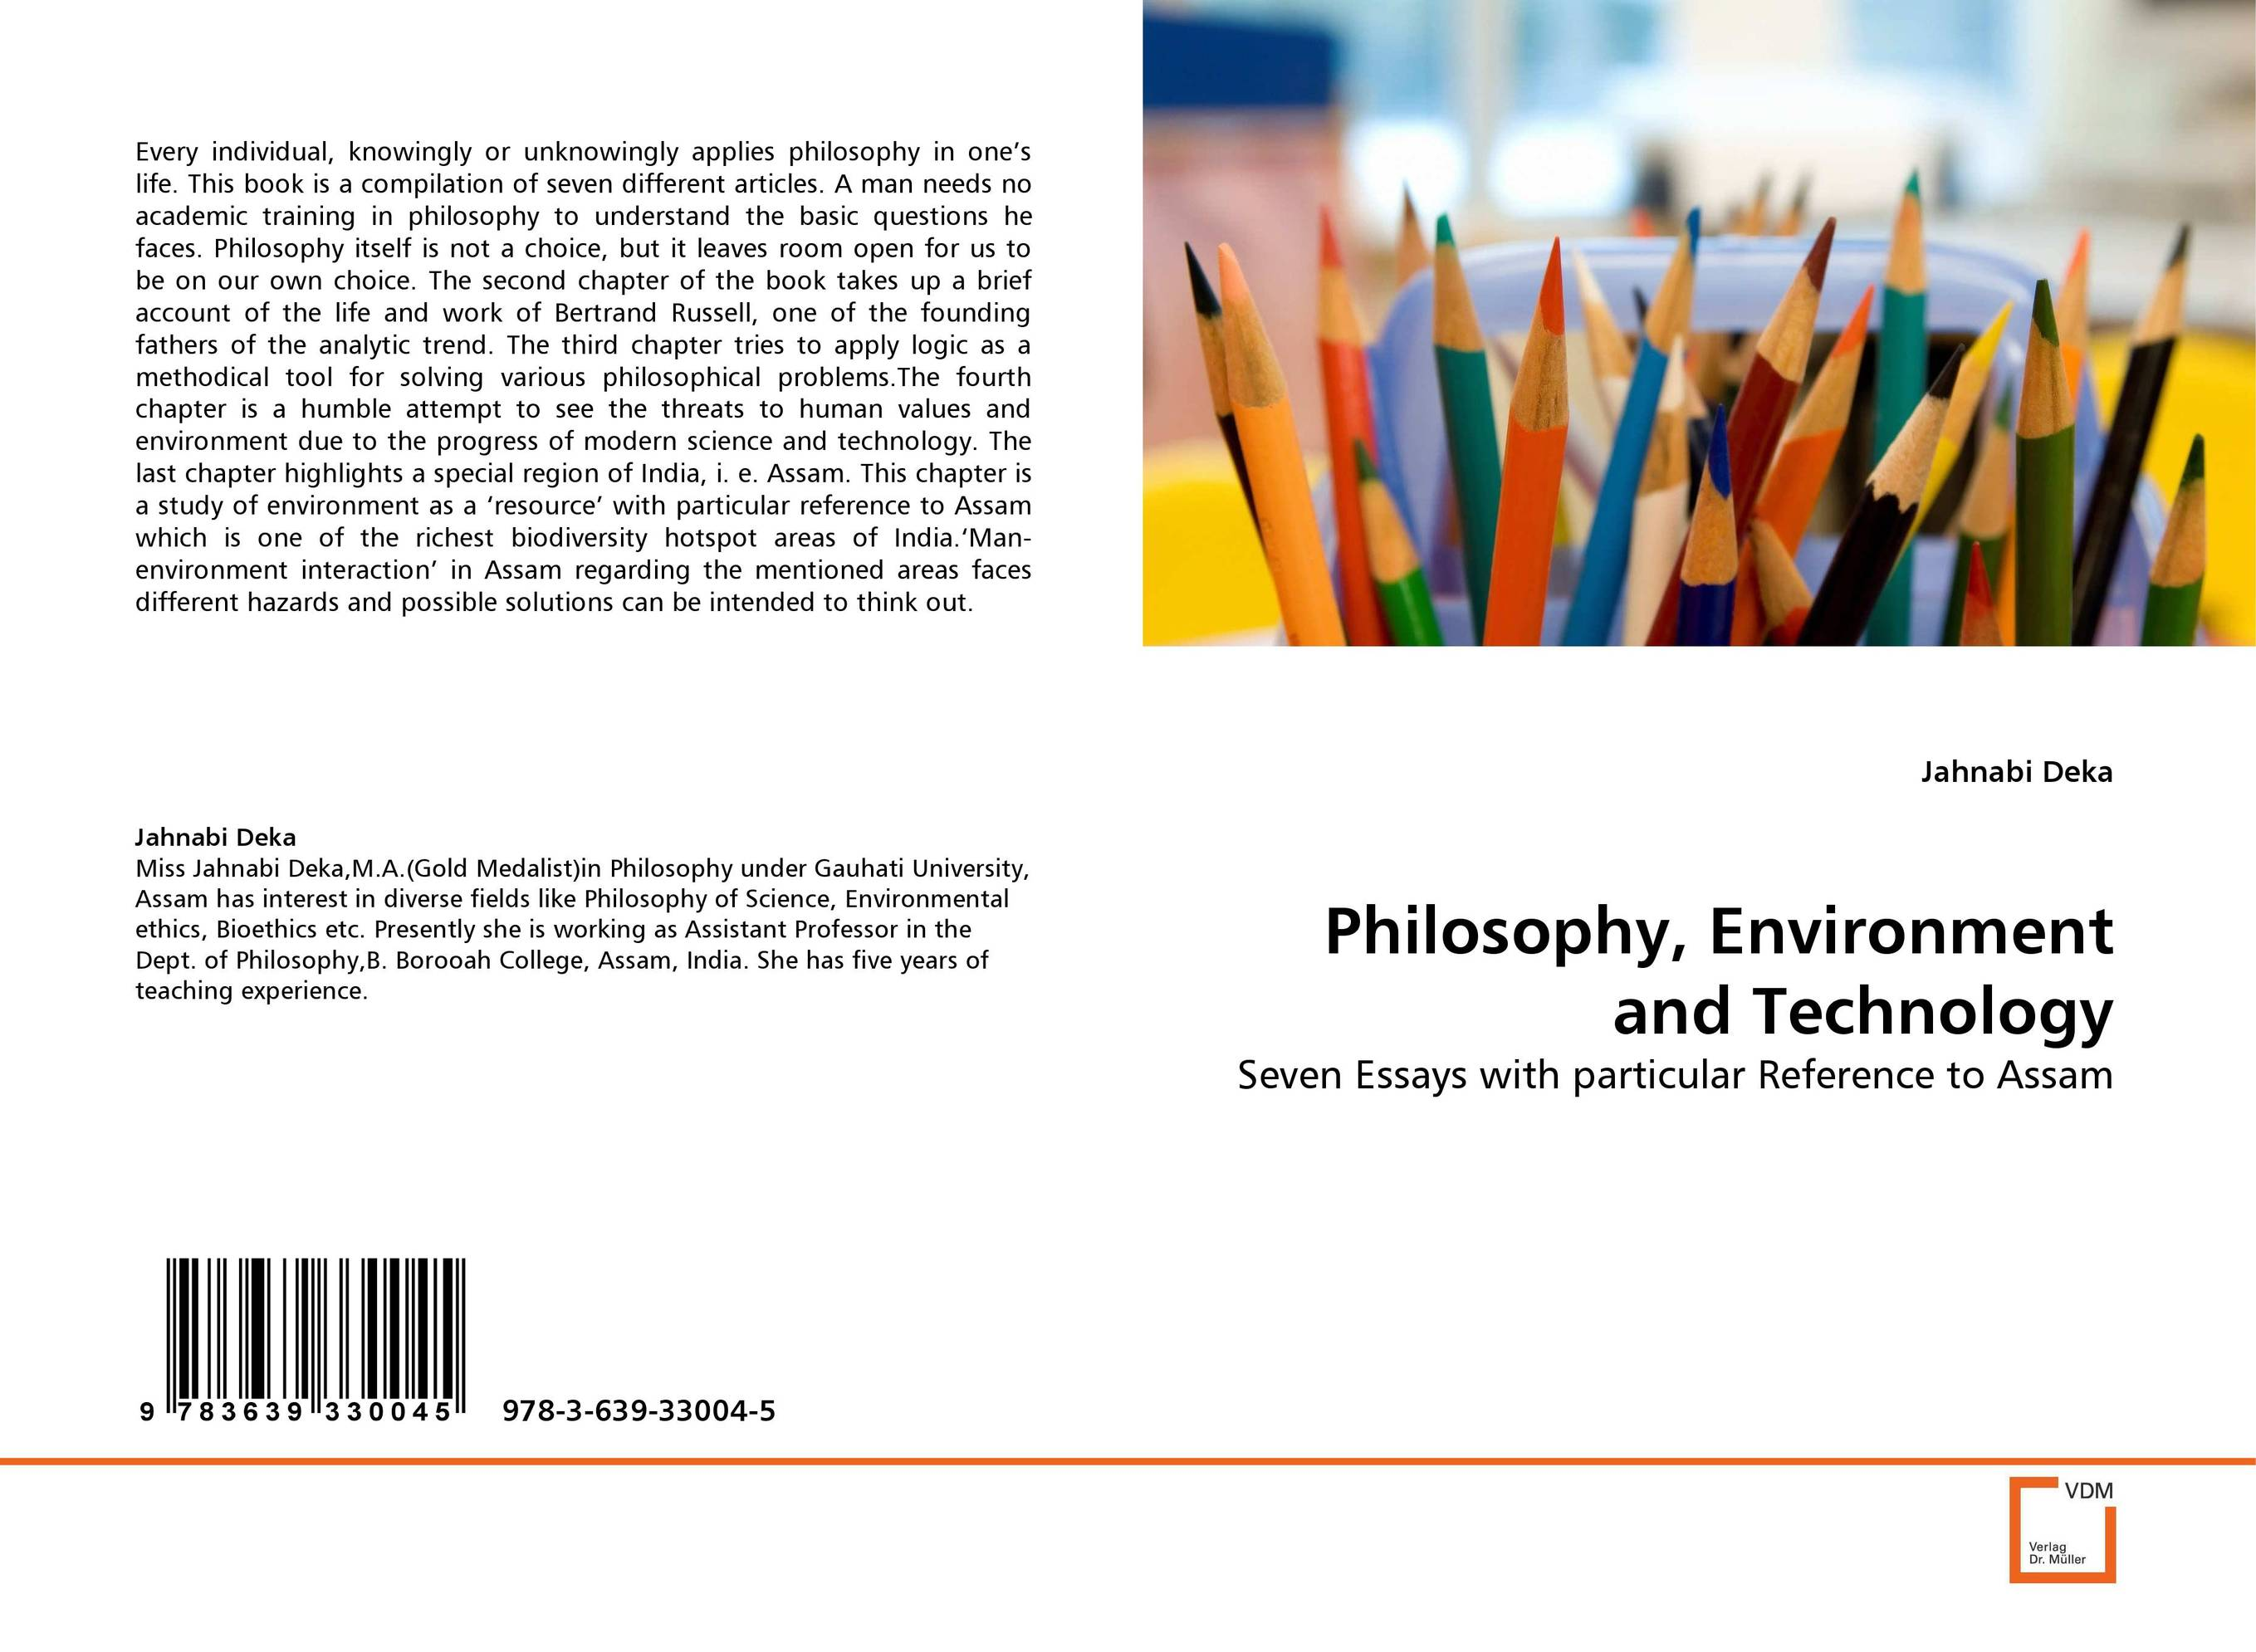 Philosophy, Environment and Technology